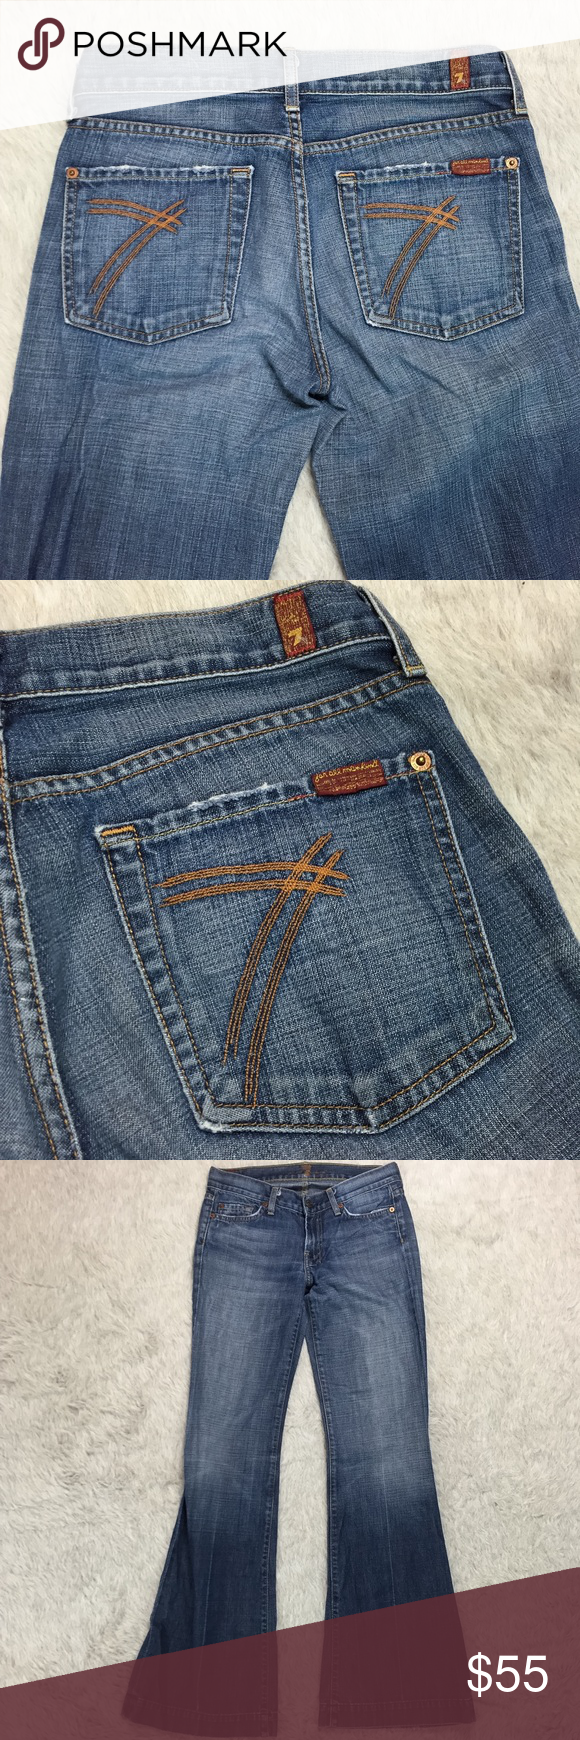 7fam vintage orange dojos Awesome vintage orange dojo pocket 7fam jeans. Wide/flare leg. Hems have some wear on the back as pictured and inside printed logo is cracked/faded. In otherwise excellent condition. Approximate flat lay measurements: waist 15in, length 42in, inseam 33in, front rise 8in. 7 For All Mankind Jeans Flare & Wide Leg